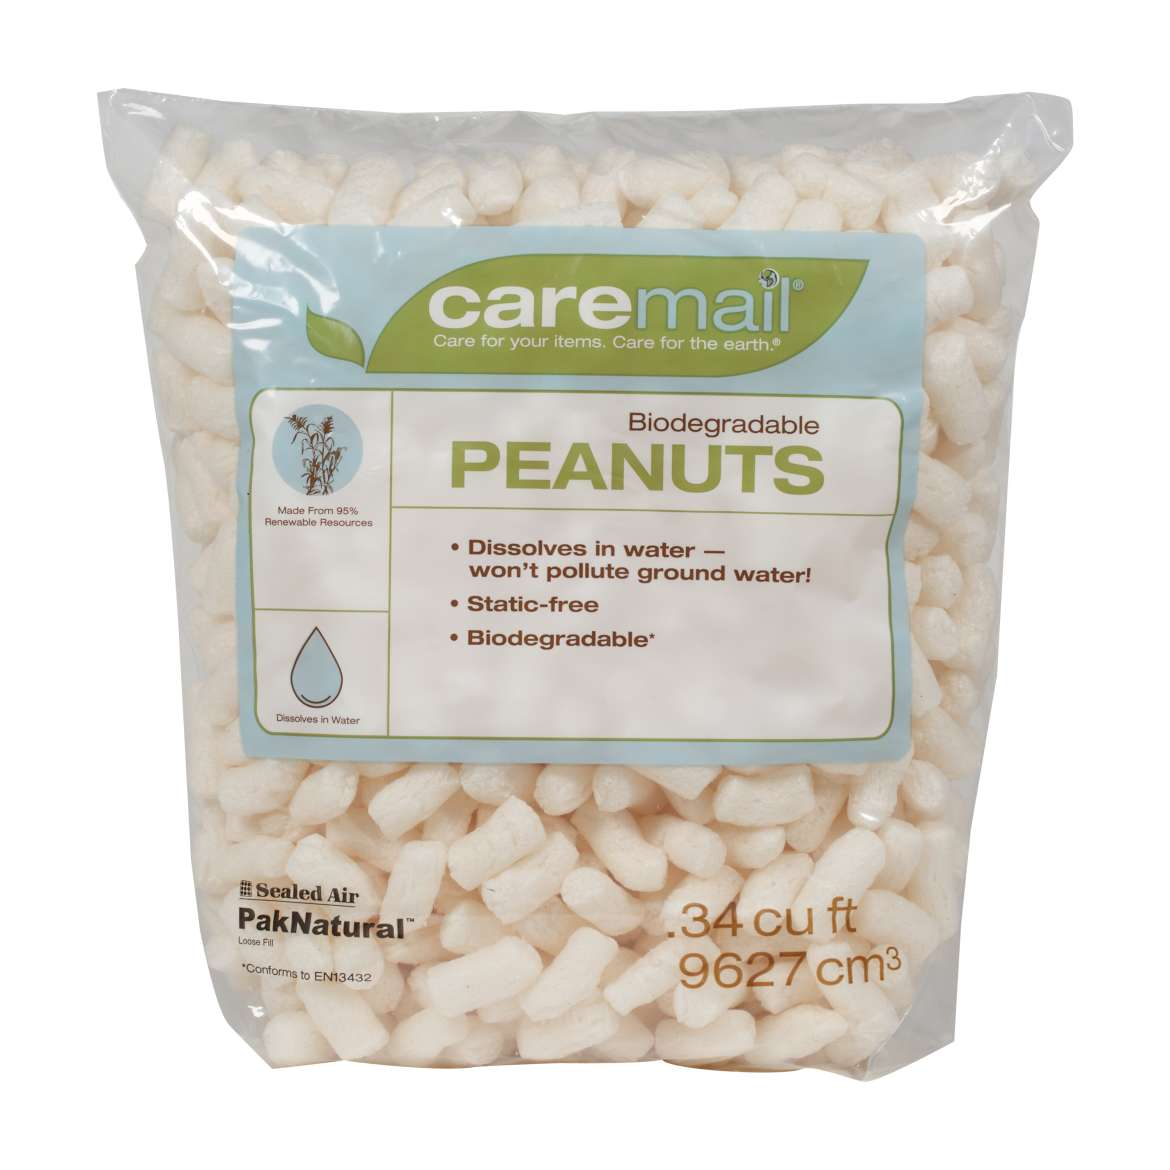 Caremail® Biodegradable Packing Peanuts - White, .34 cu ft. Image